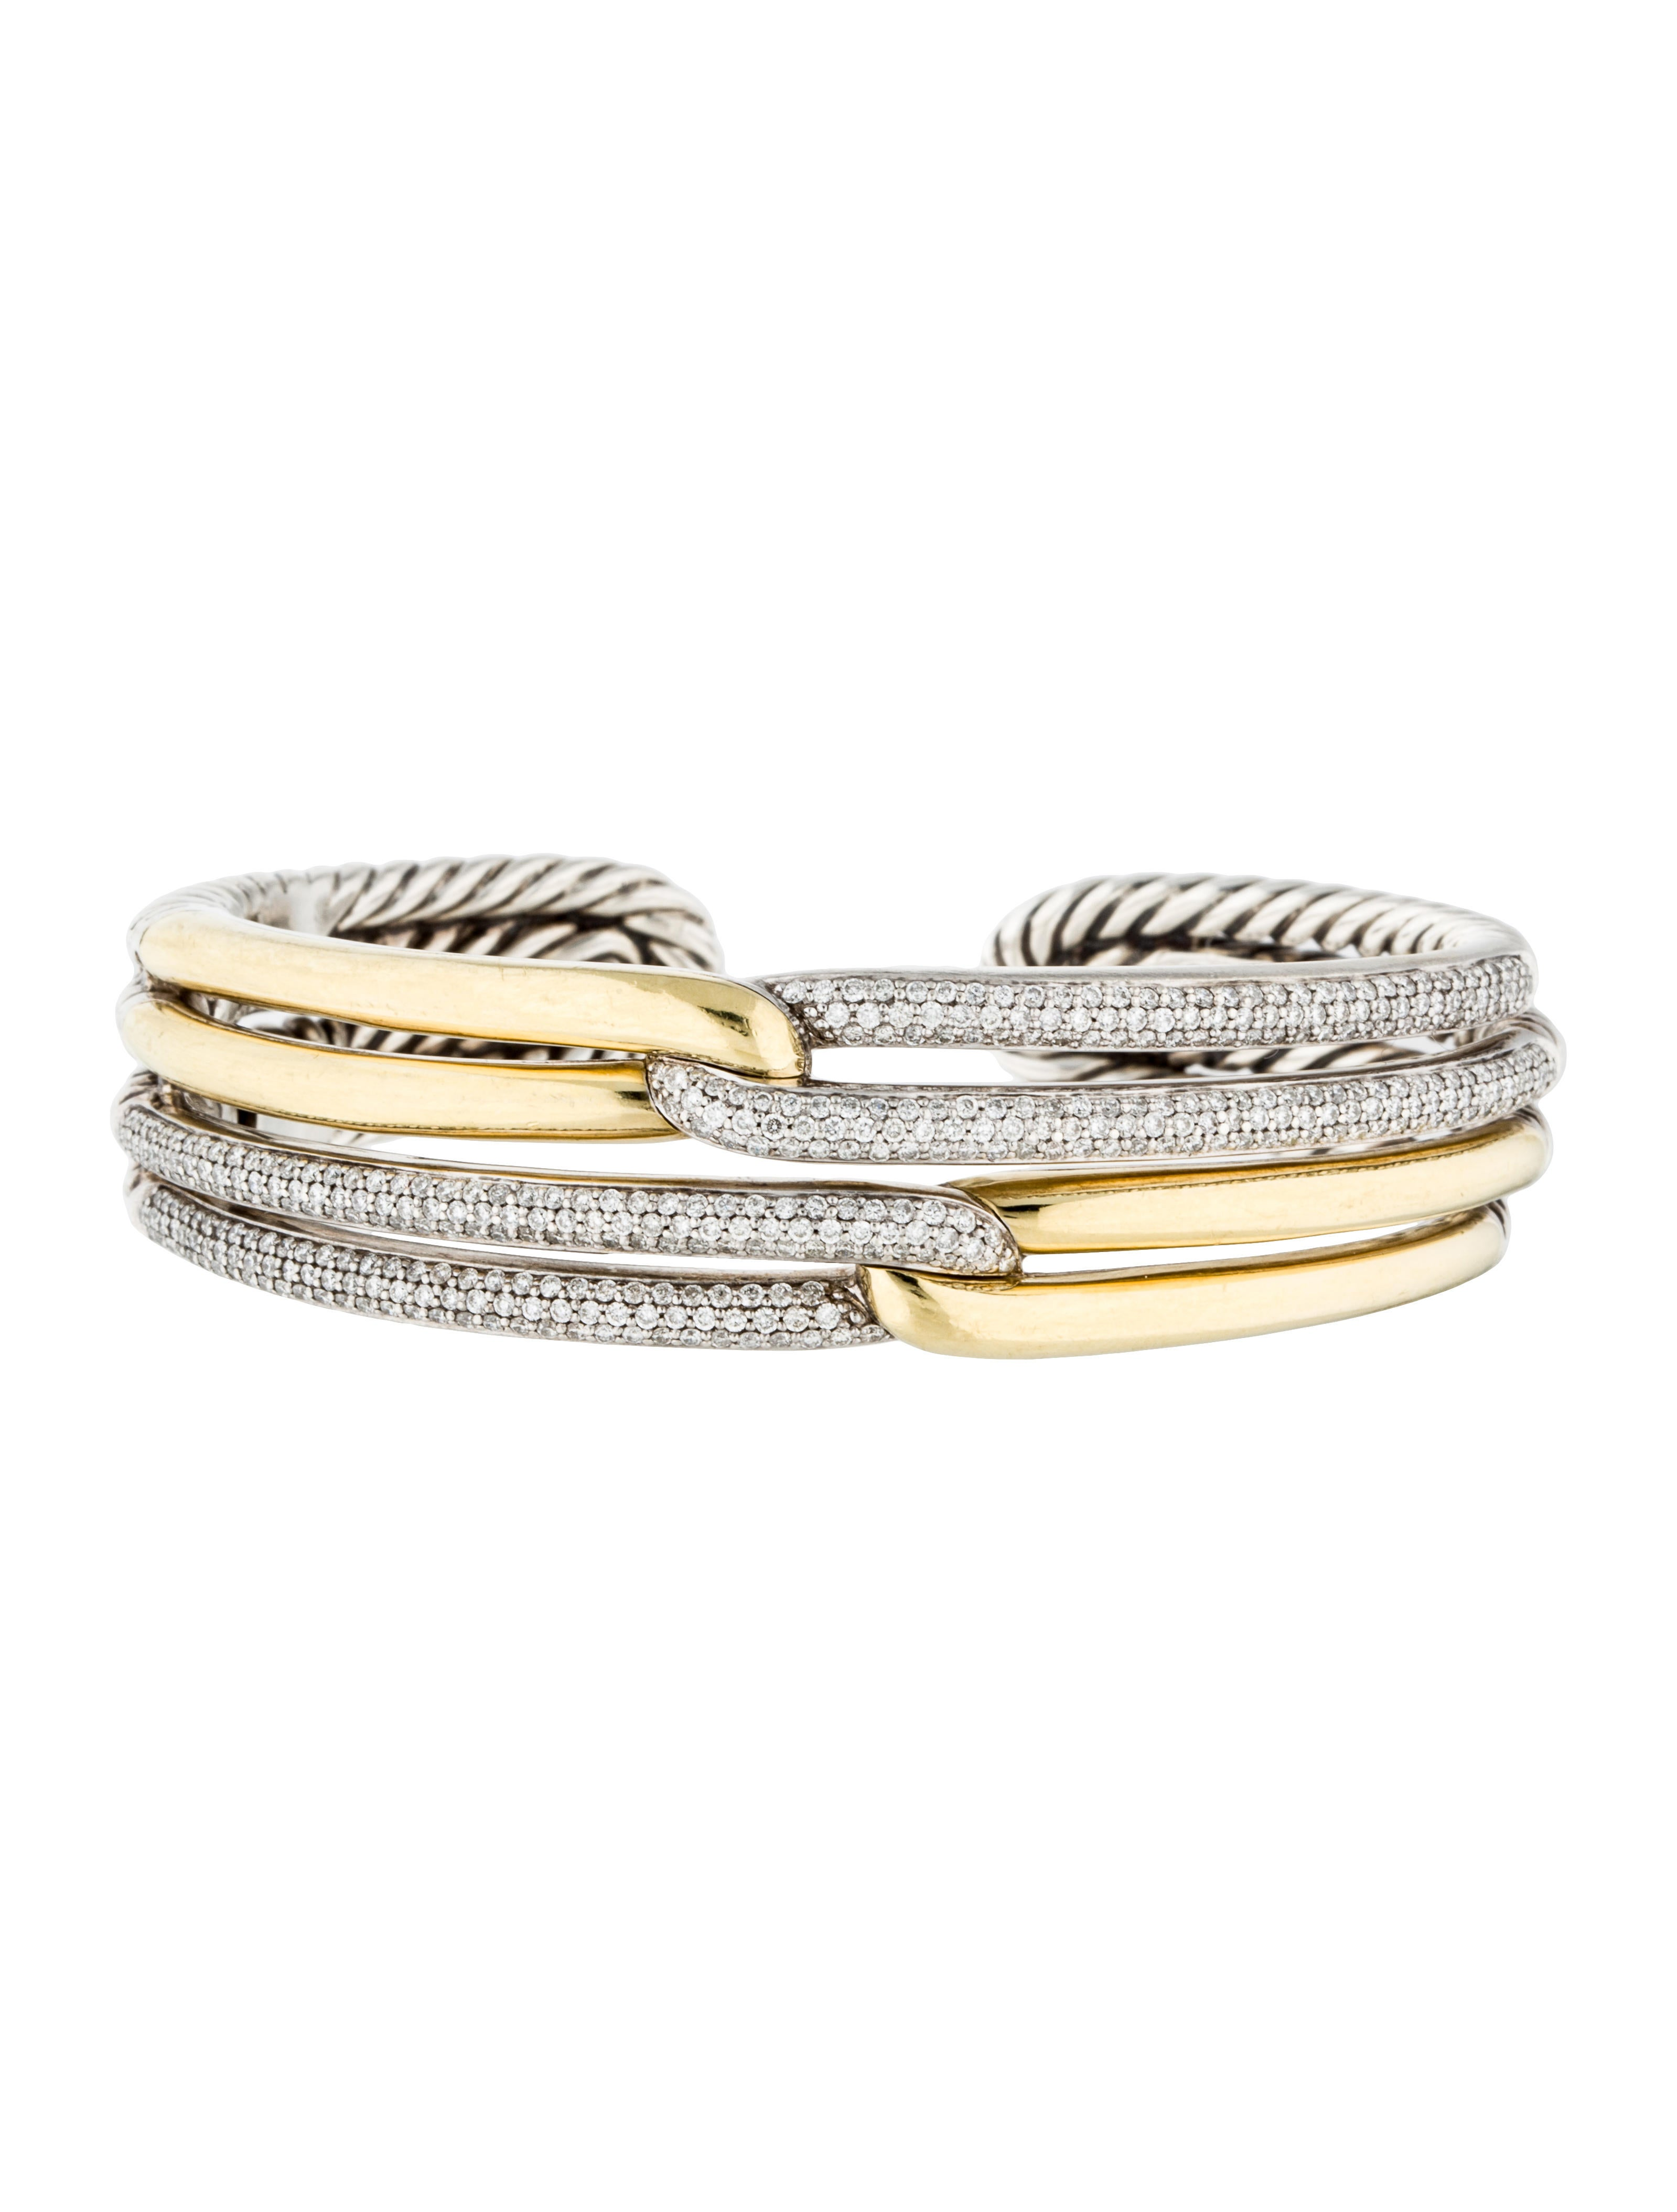 david yurman two tone labyrinth double loop cuff bracelet. Black Bedroom Furniture Sets. Home Design Ideas